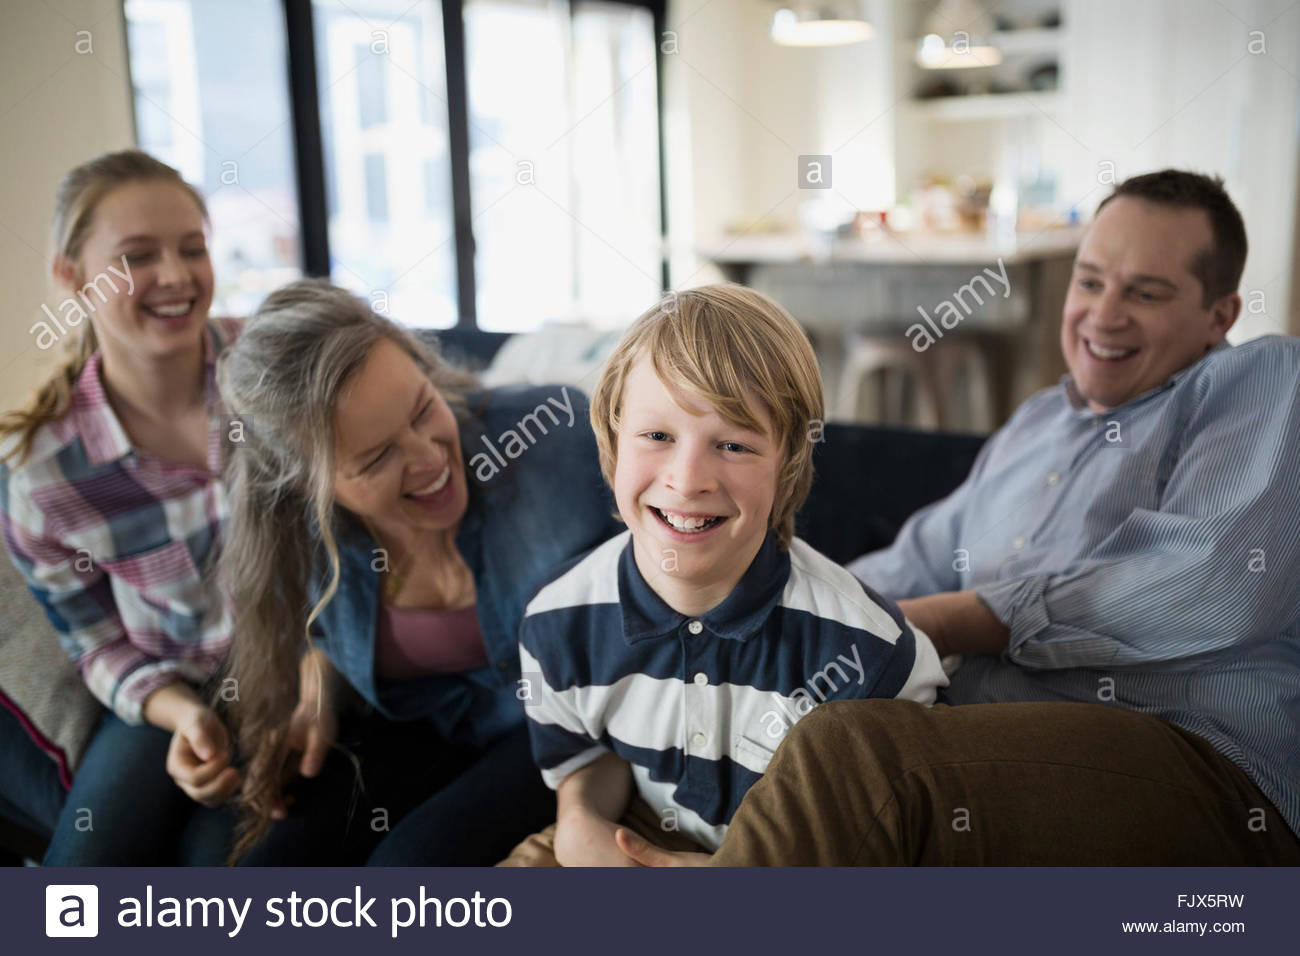 Portrait smiling boy with family living room sofa - Stock Image